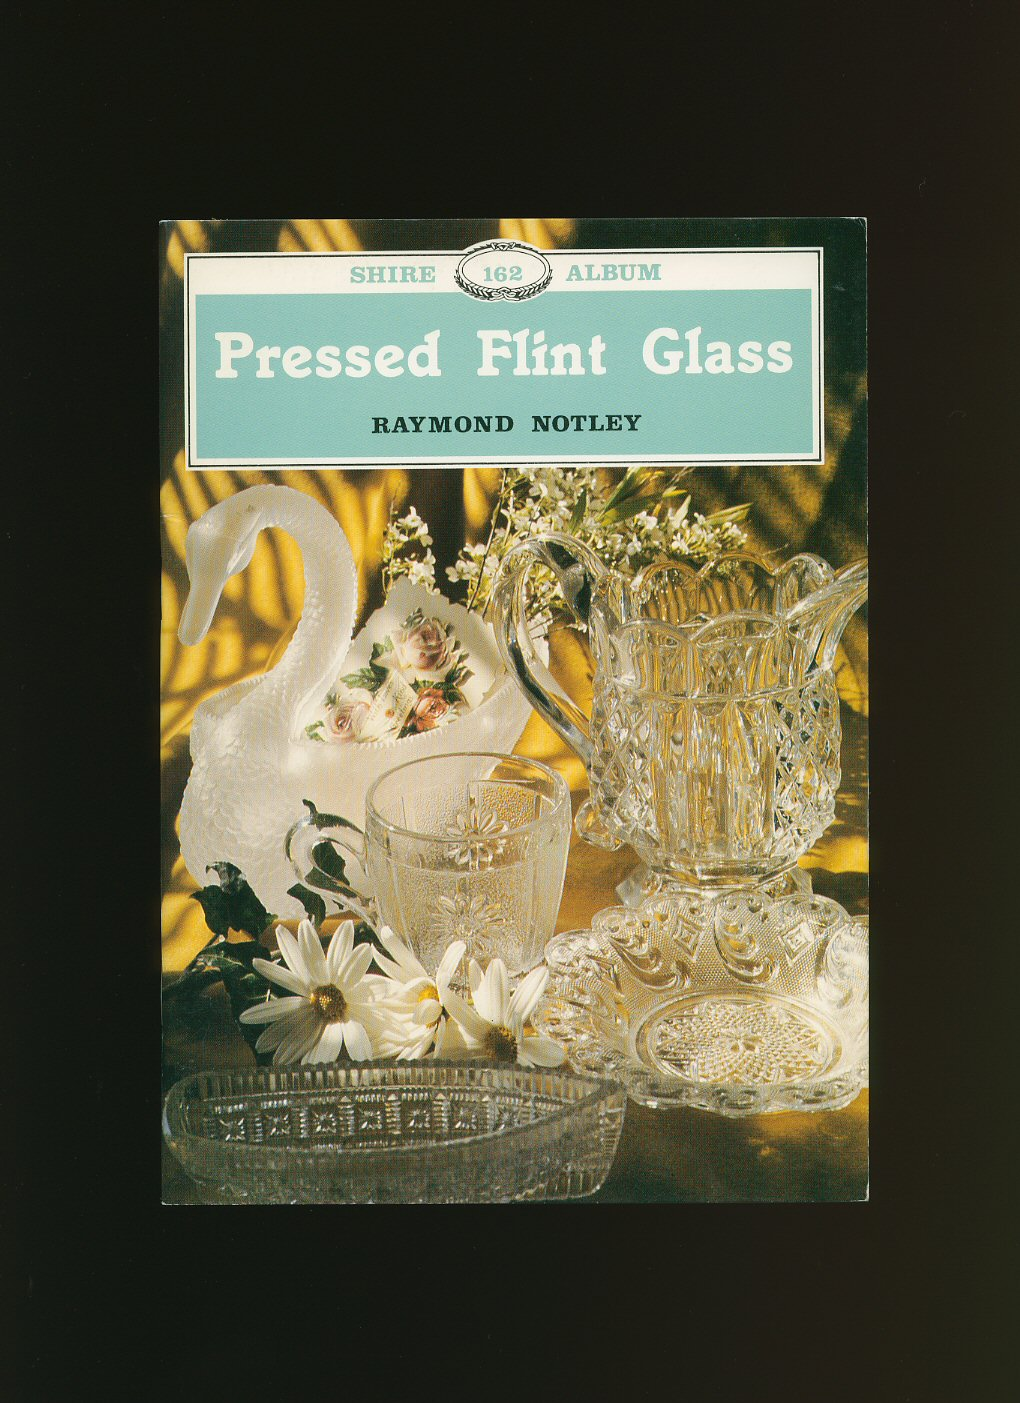 NOTLEY, RAYMOND - Pressed Flint Glass [Shire Album Series No. 162]